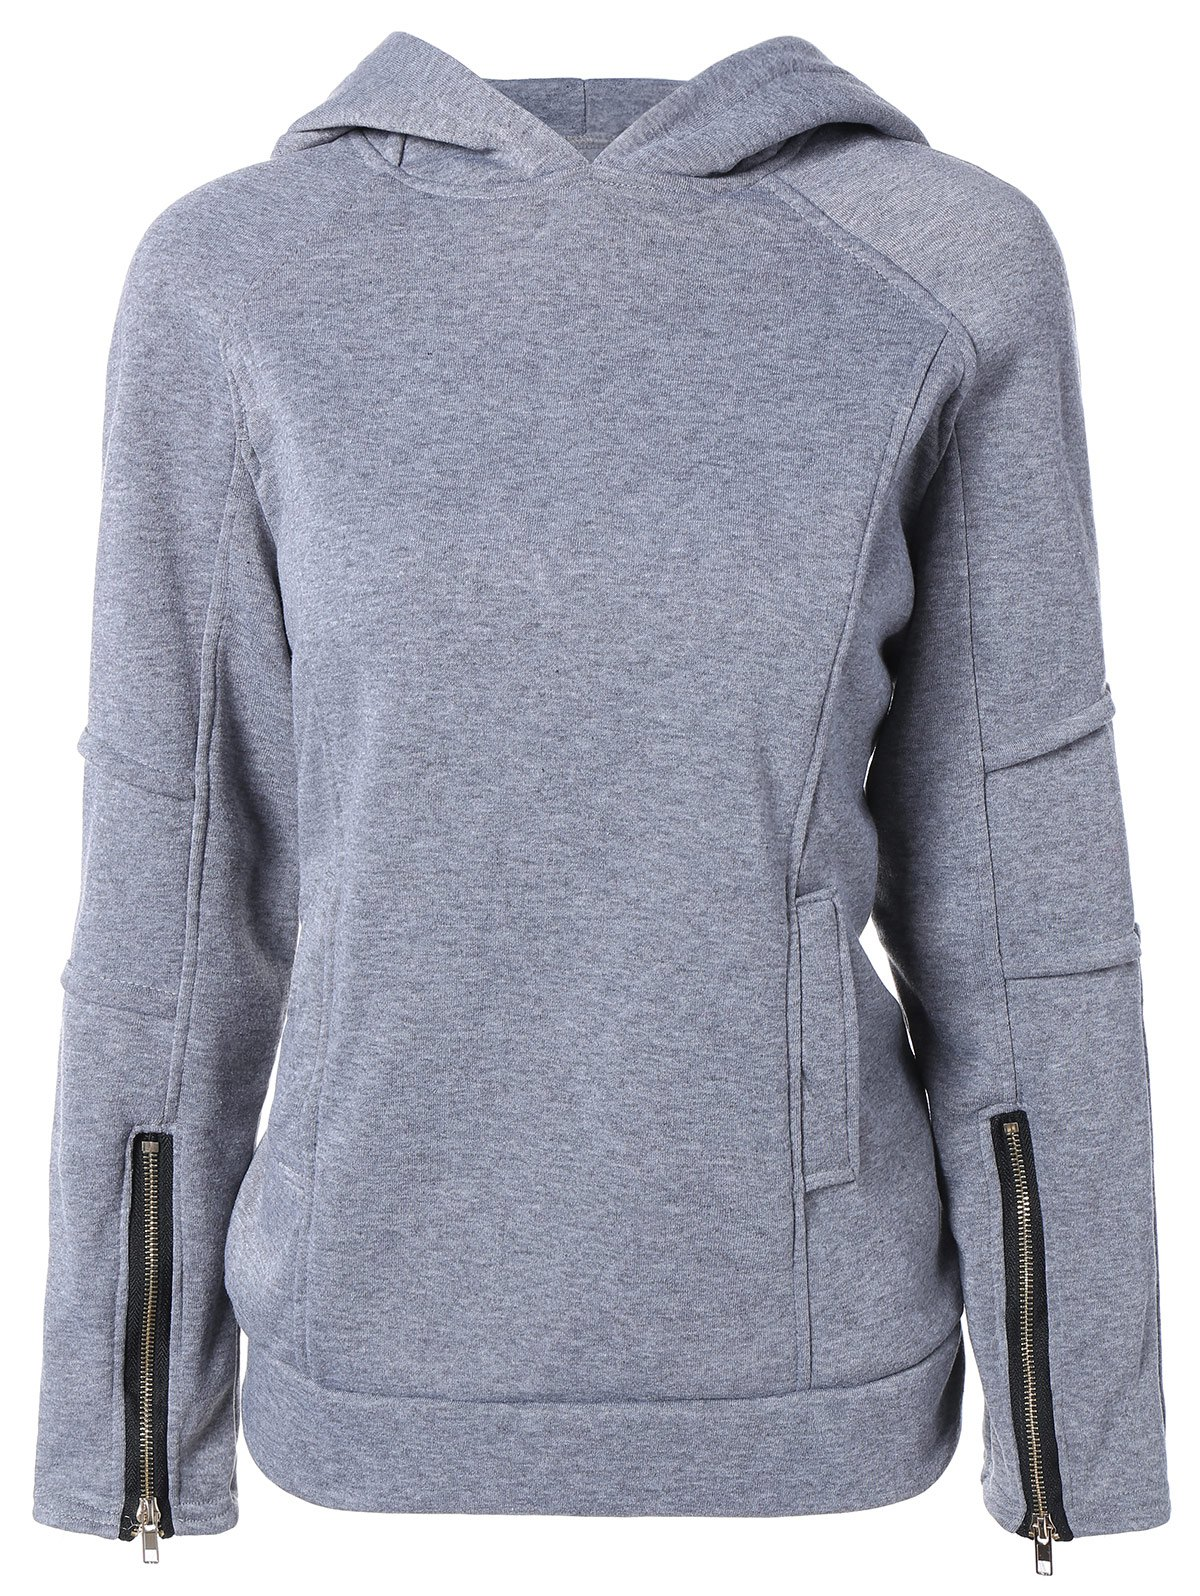 Solid Color Zip Embellished Patchwork Pullover HoodieWomen<br><br><br>Size: M<br>Color: GRAY